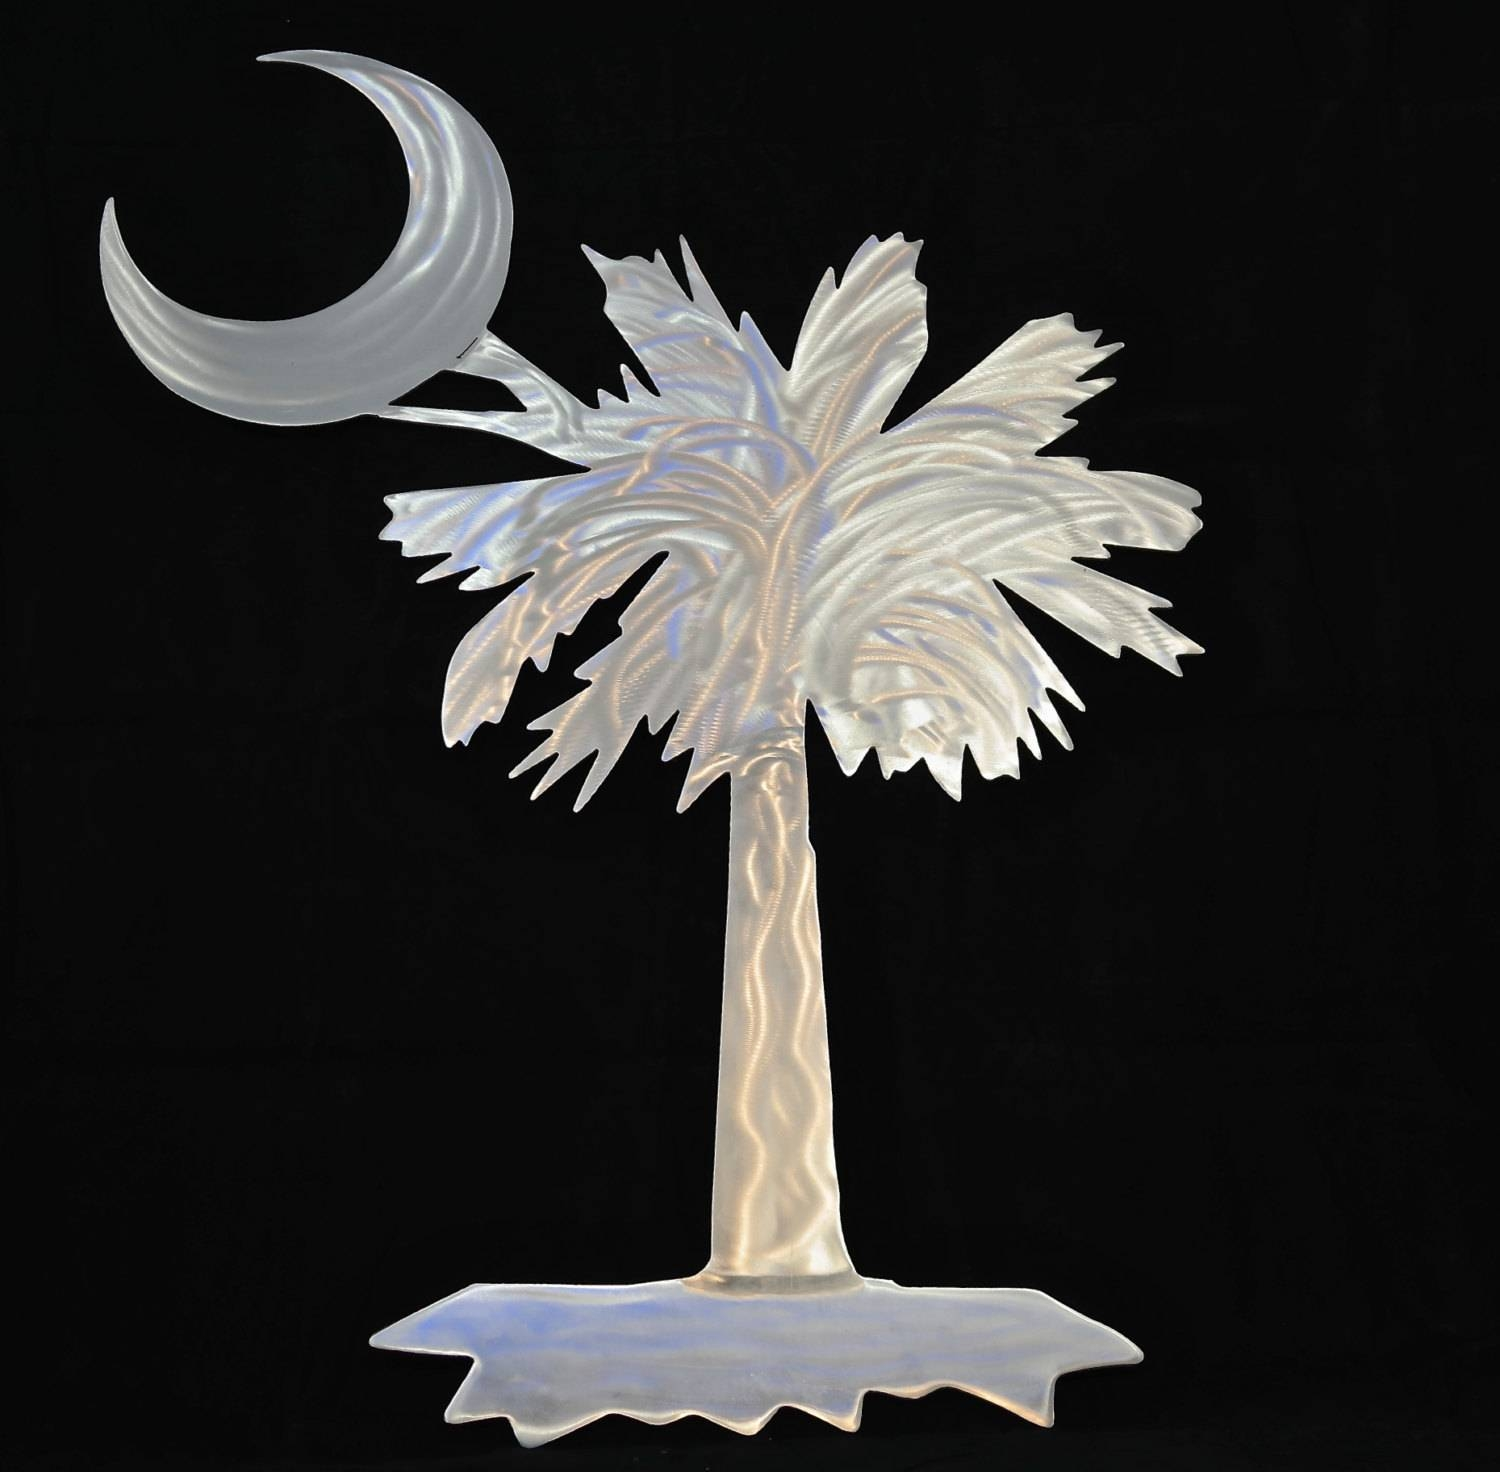 Outdoor Metal Wall Art Palmetto Tree Wall Art Palmetto Tree For Best And Newest Metal Wall Art Palm Trees (View 5 of 20)